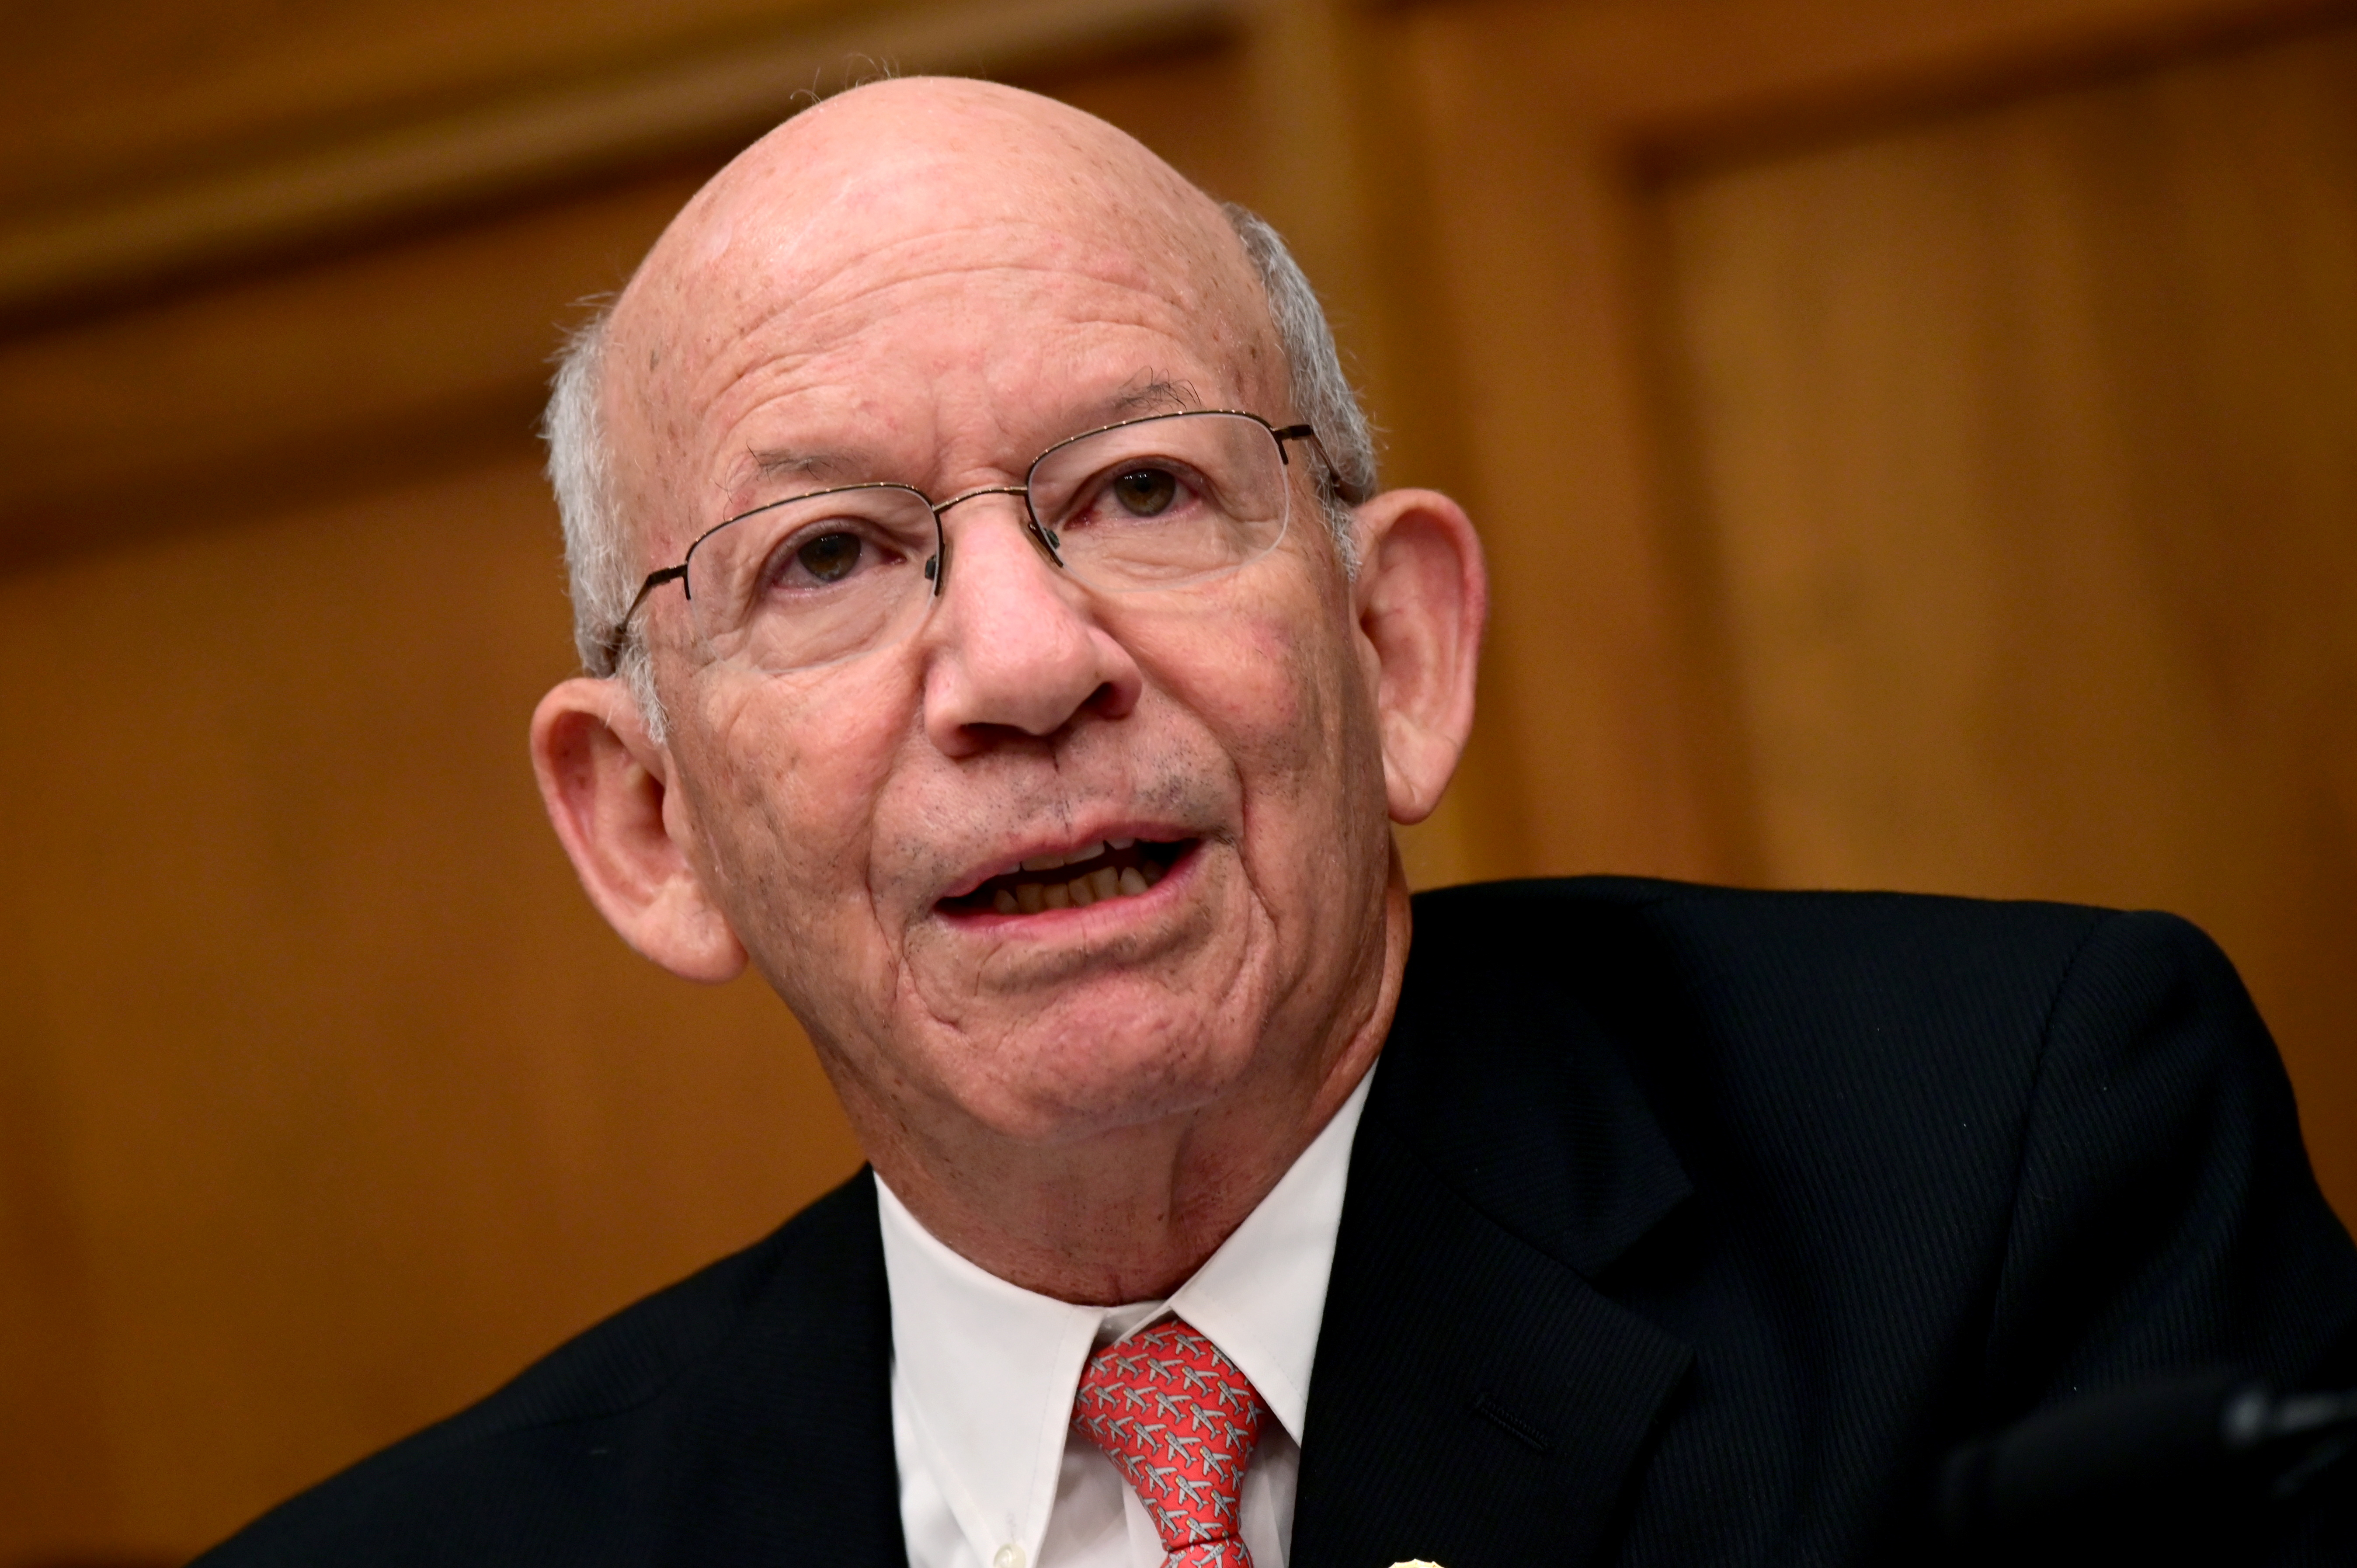 Representative Peter DeFazio (D-OR) speaks during a House Transportation and Infrastructure Aviation Subcommittee hearing  in Washington, D.C., U.S., July 17, 2019. REUTERS/Erin Scott/File Photo